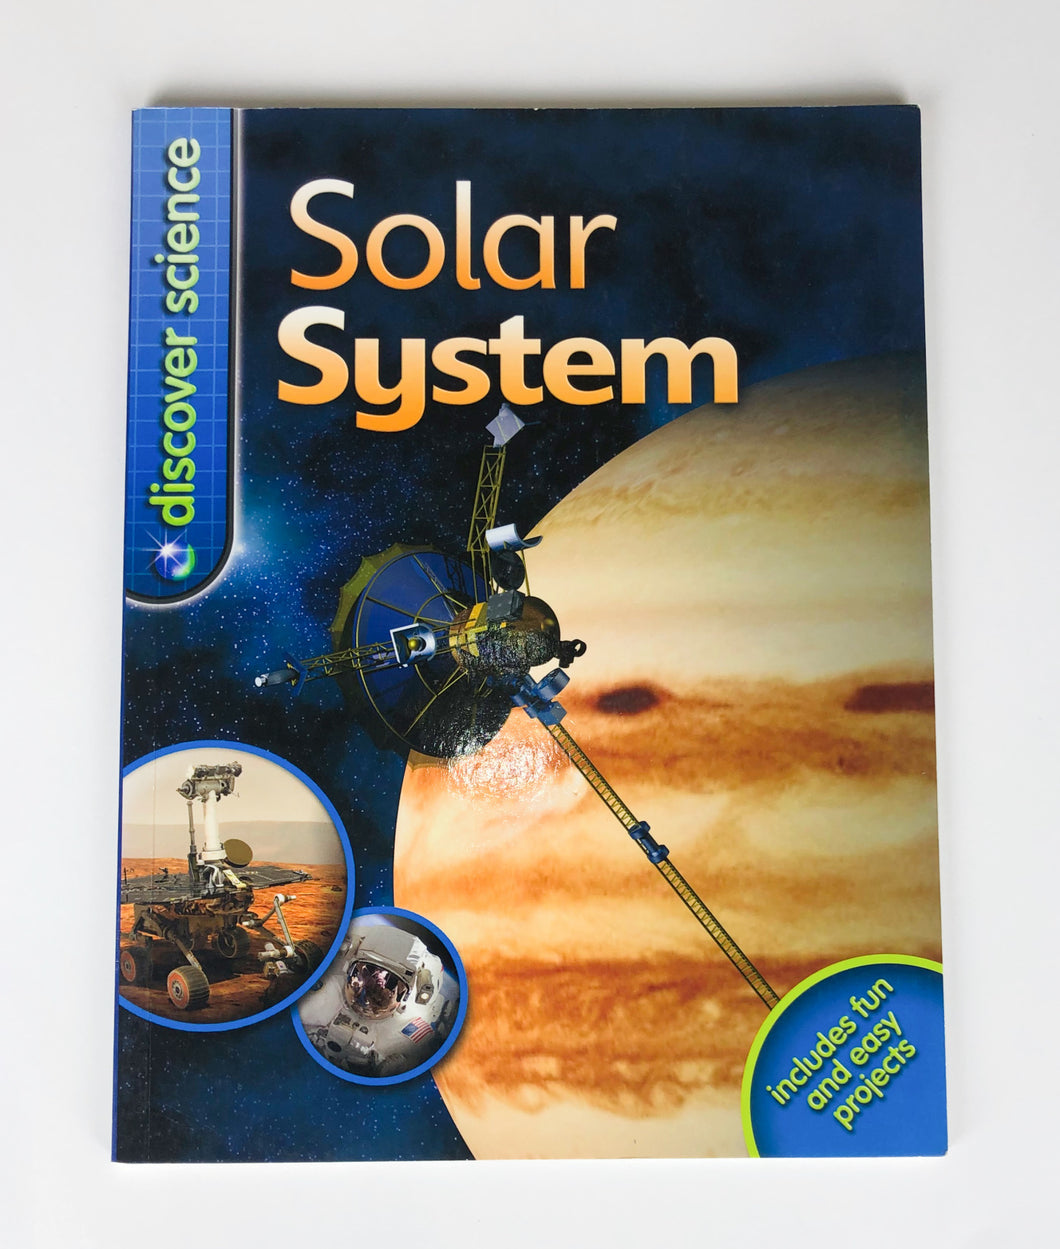 Solar System by Discover Science | Age 5+